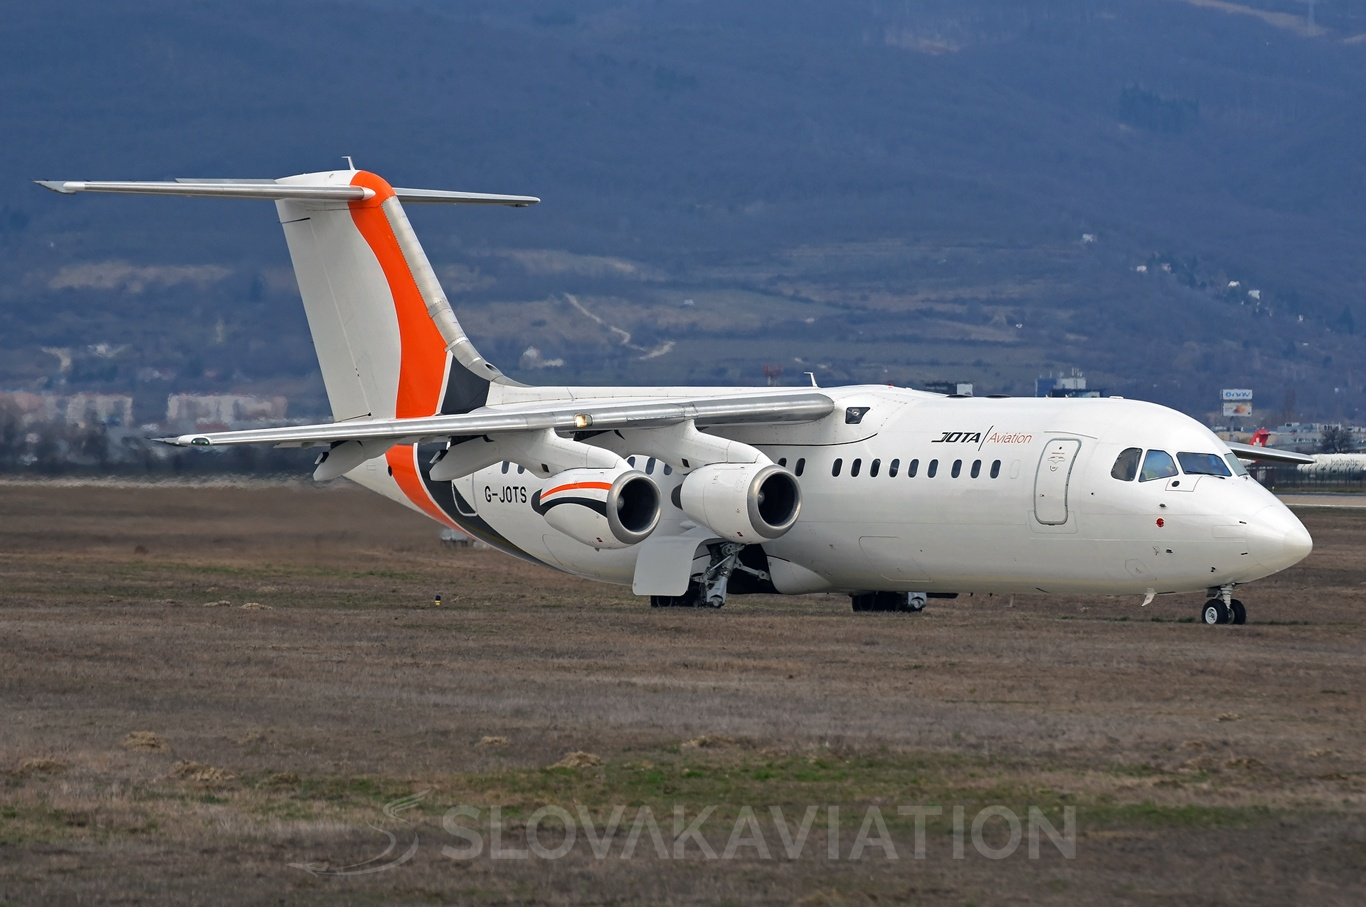 JOTA Aviation BAE Systems Avro RJ85 G-JOTS